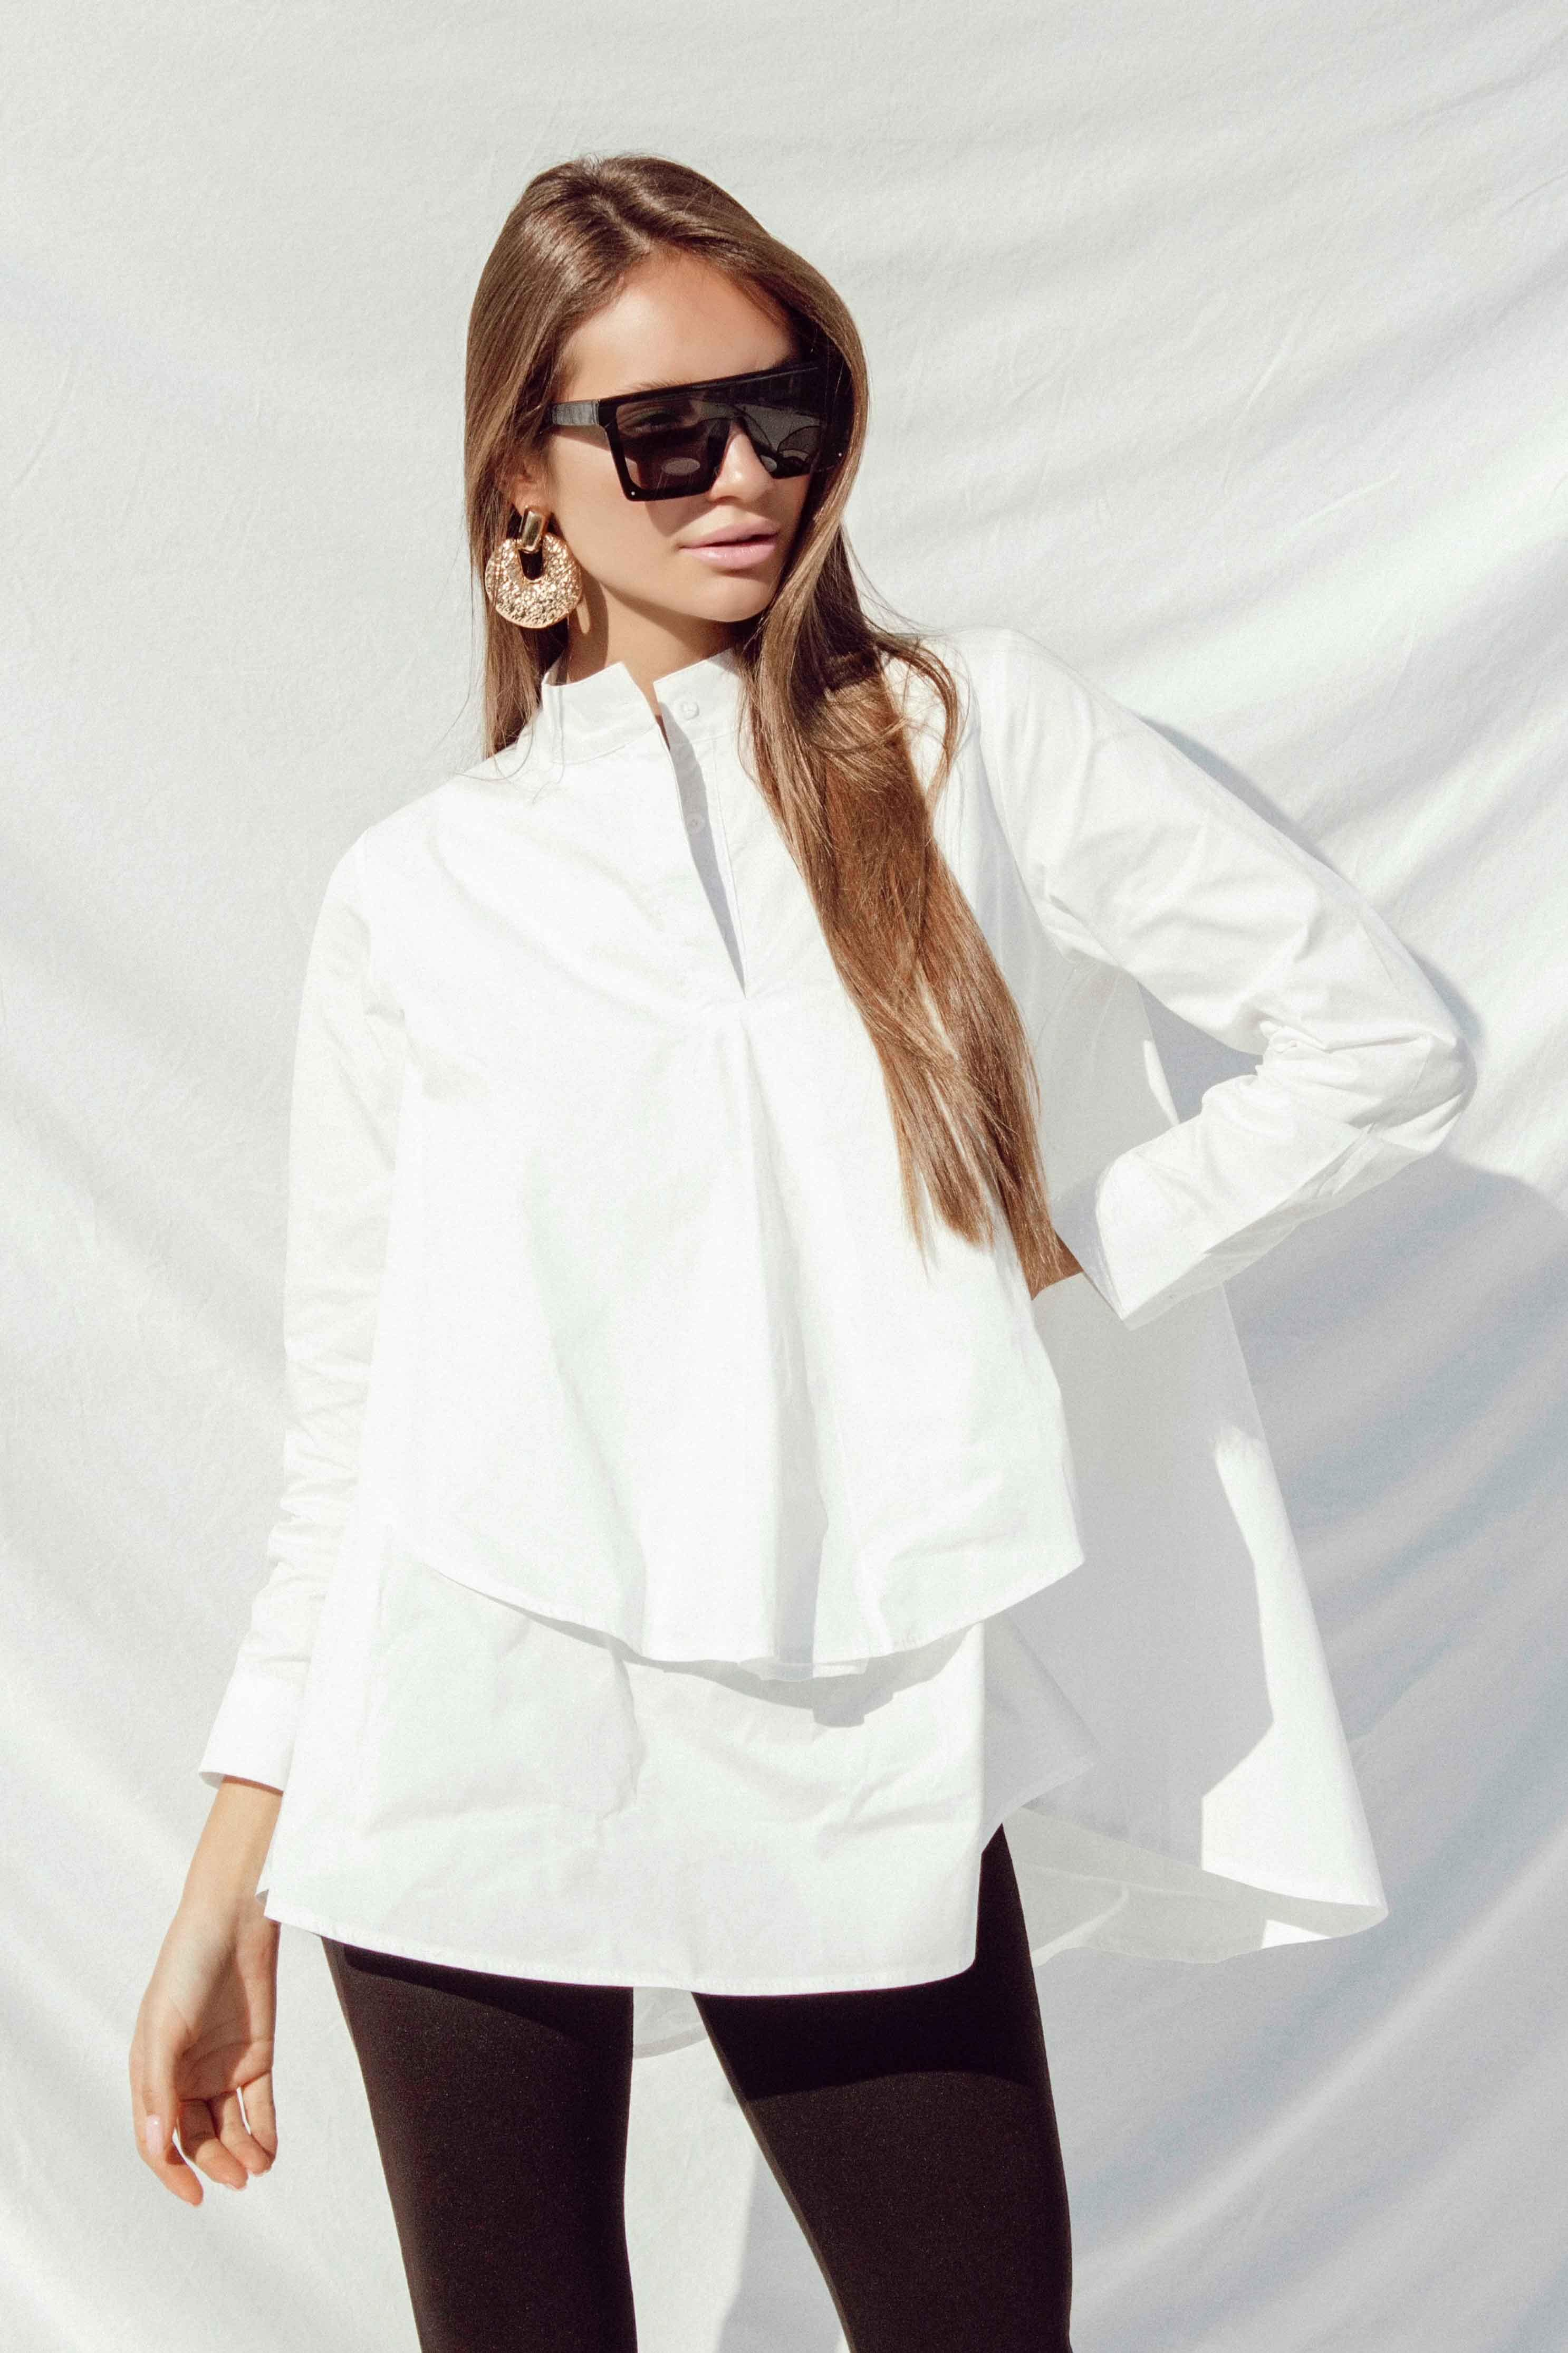 NOVAH SHIRT - Chic Le Frique